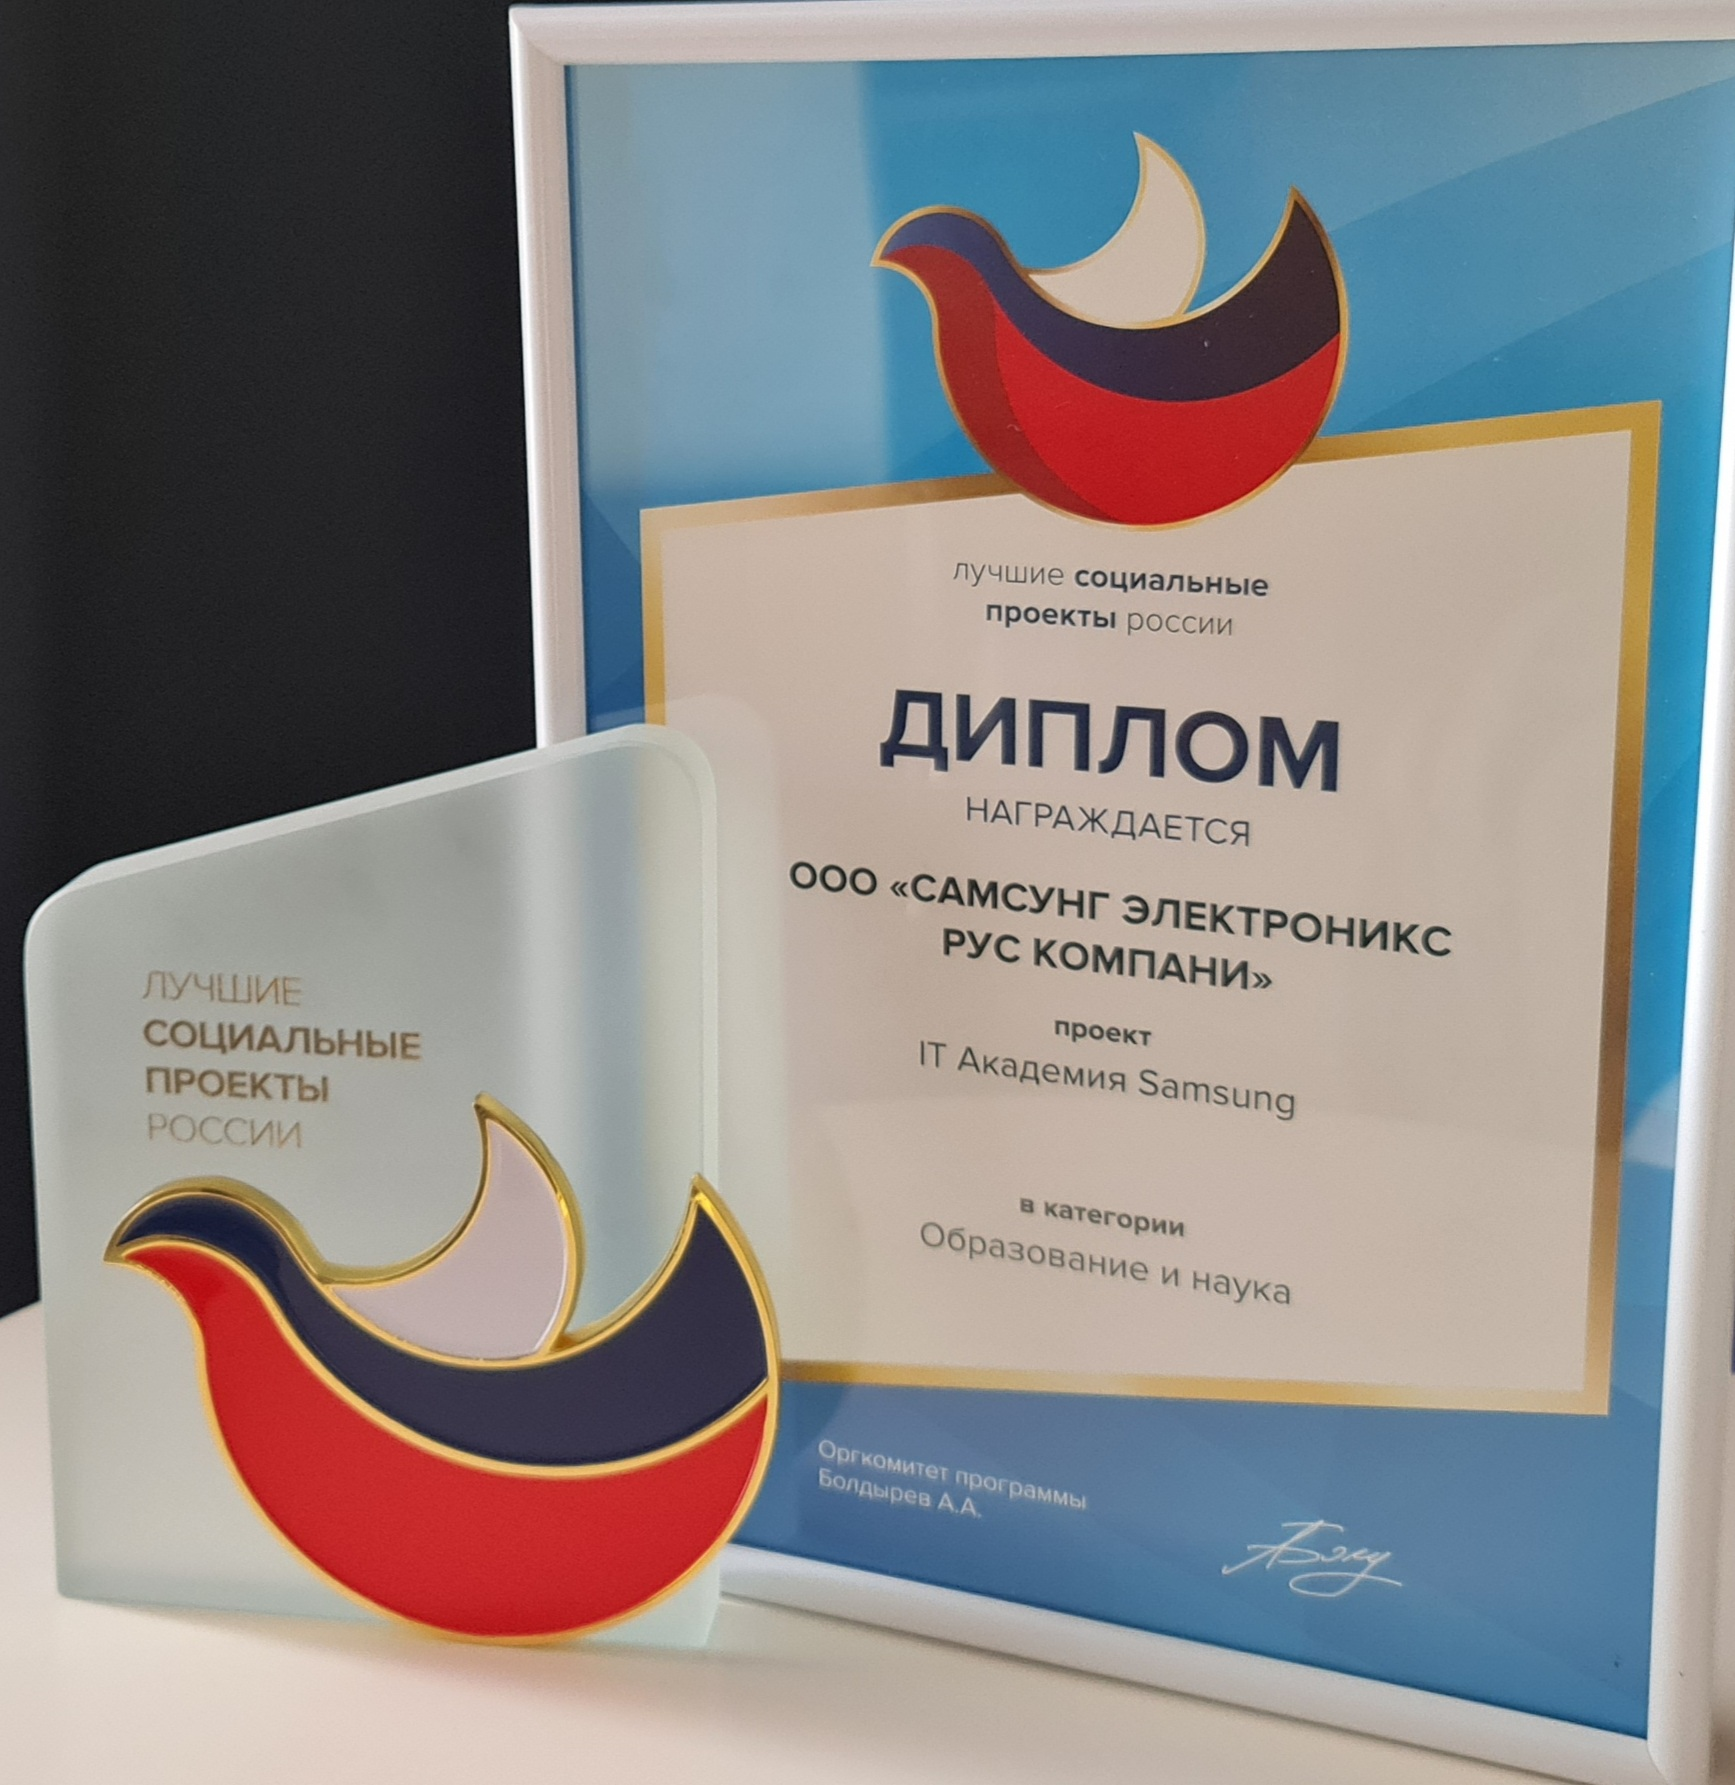 The best social projects in Russia